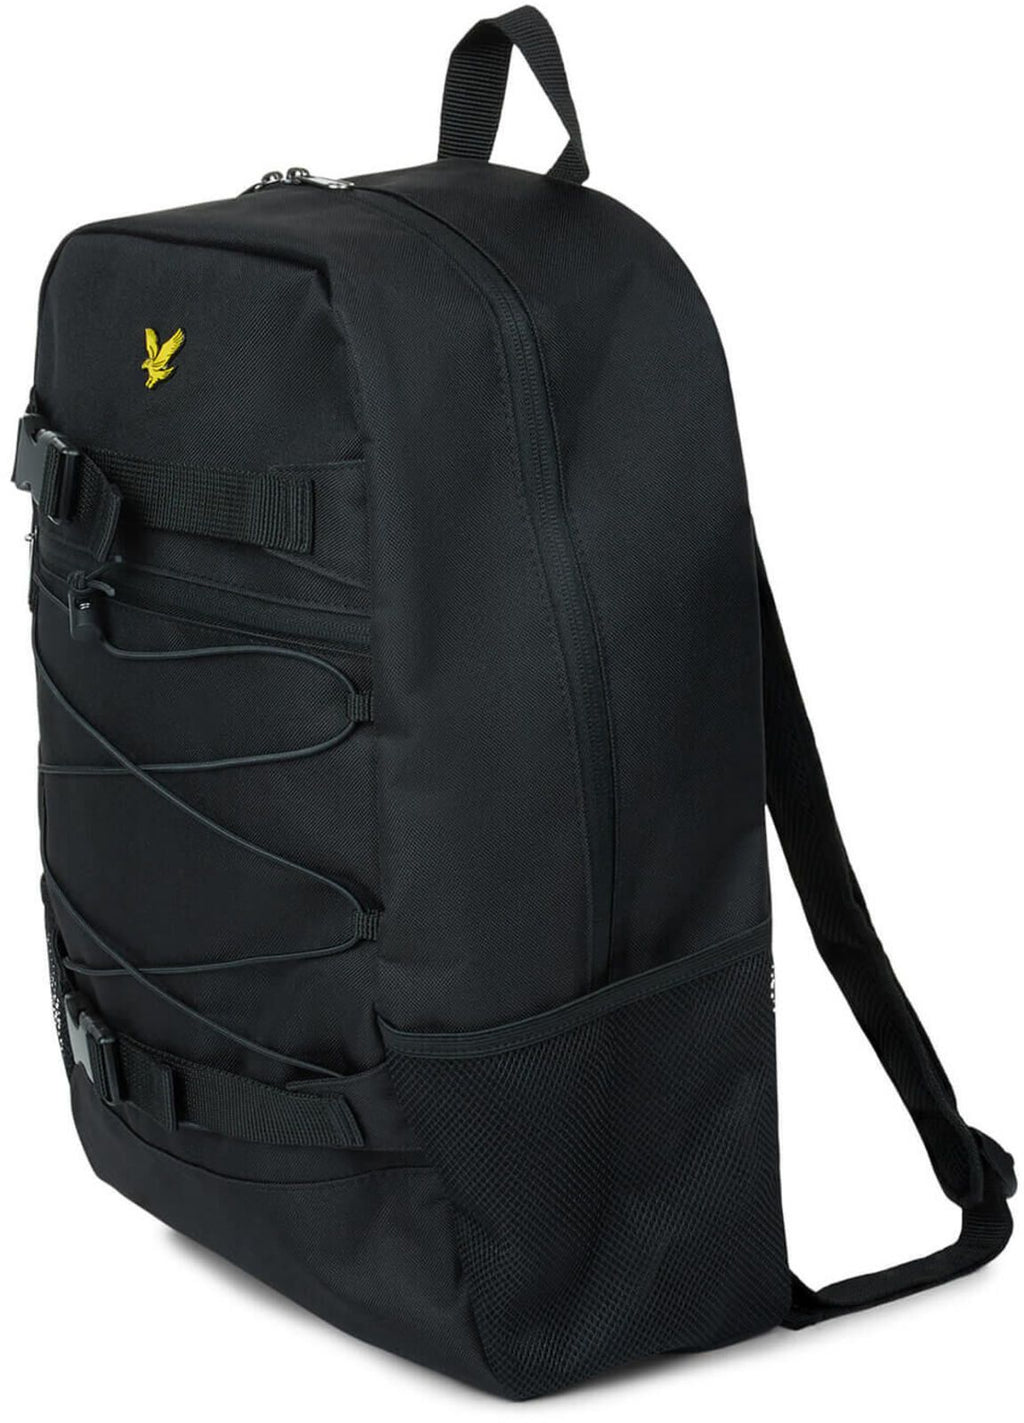 Lyle & Scott Skate Pack Backpack Bag Black